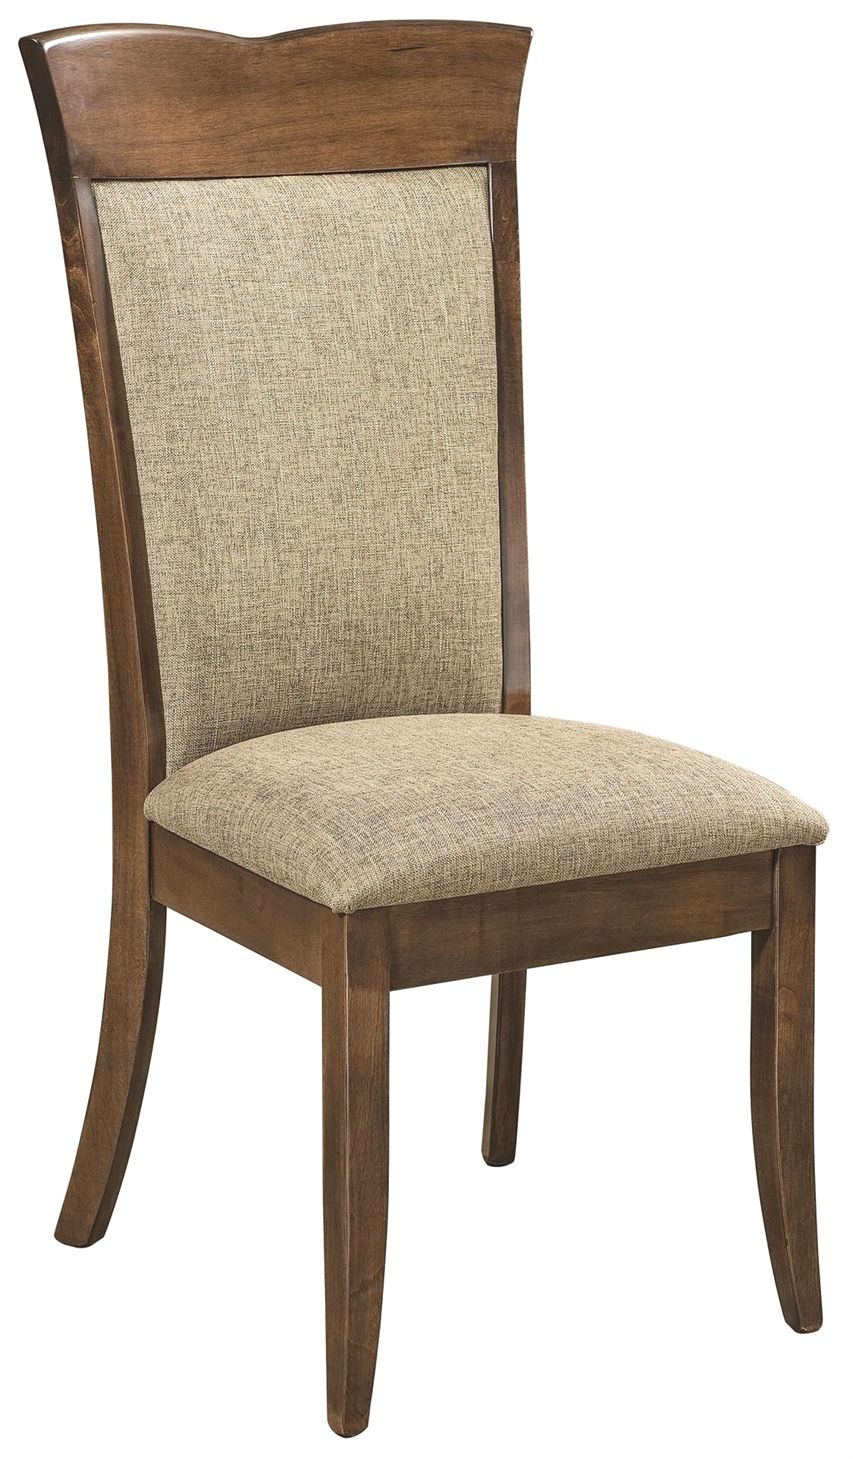 Amish Santa Fe Upholstered Dining Room Chair Samad Khan In 2019